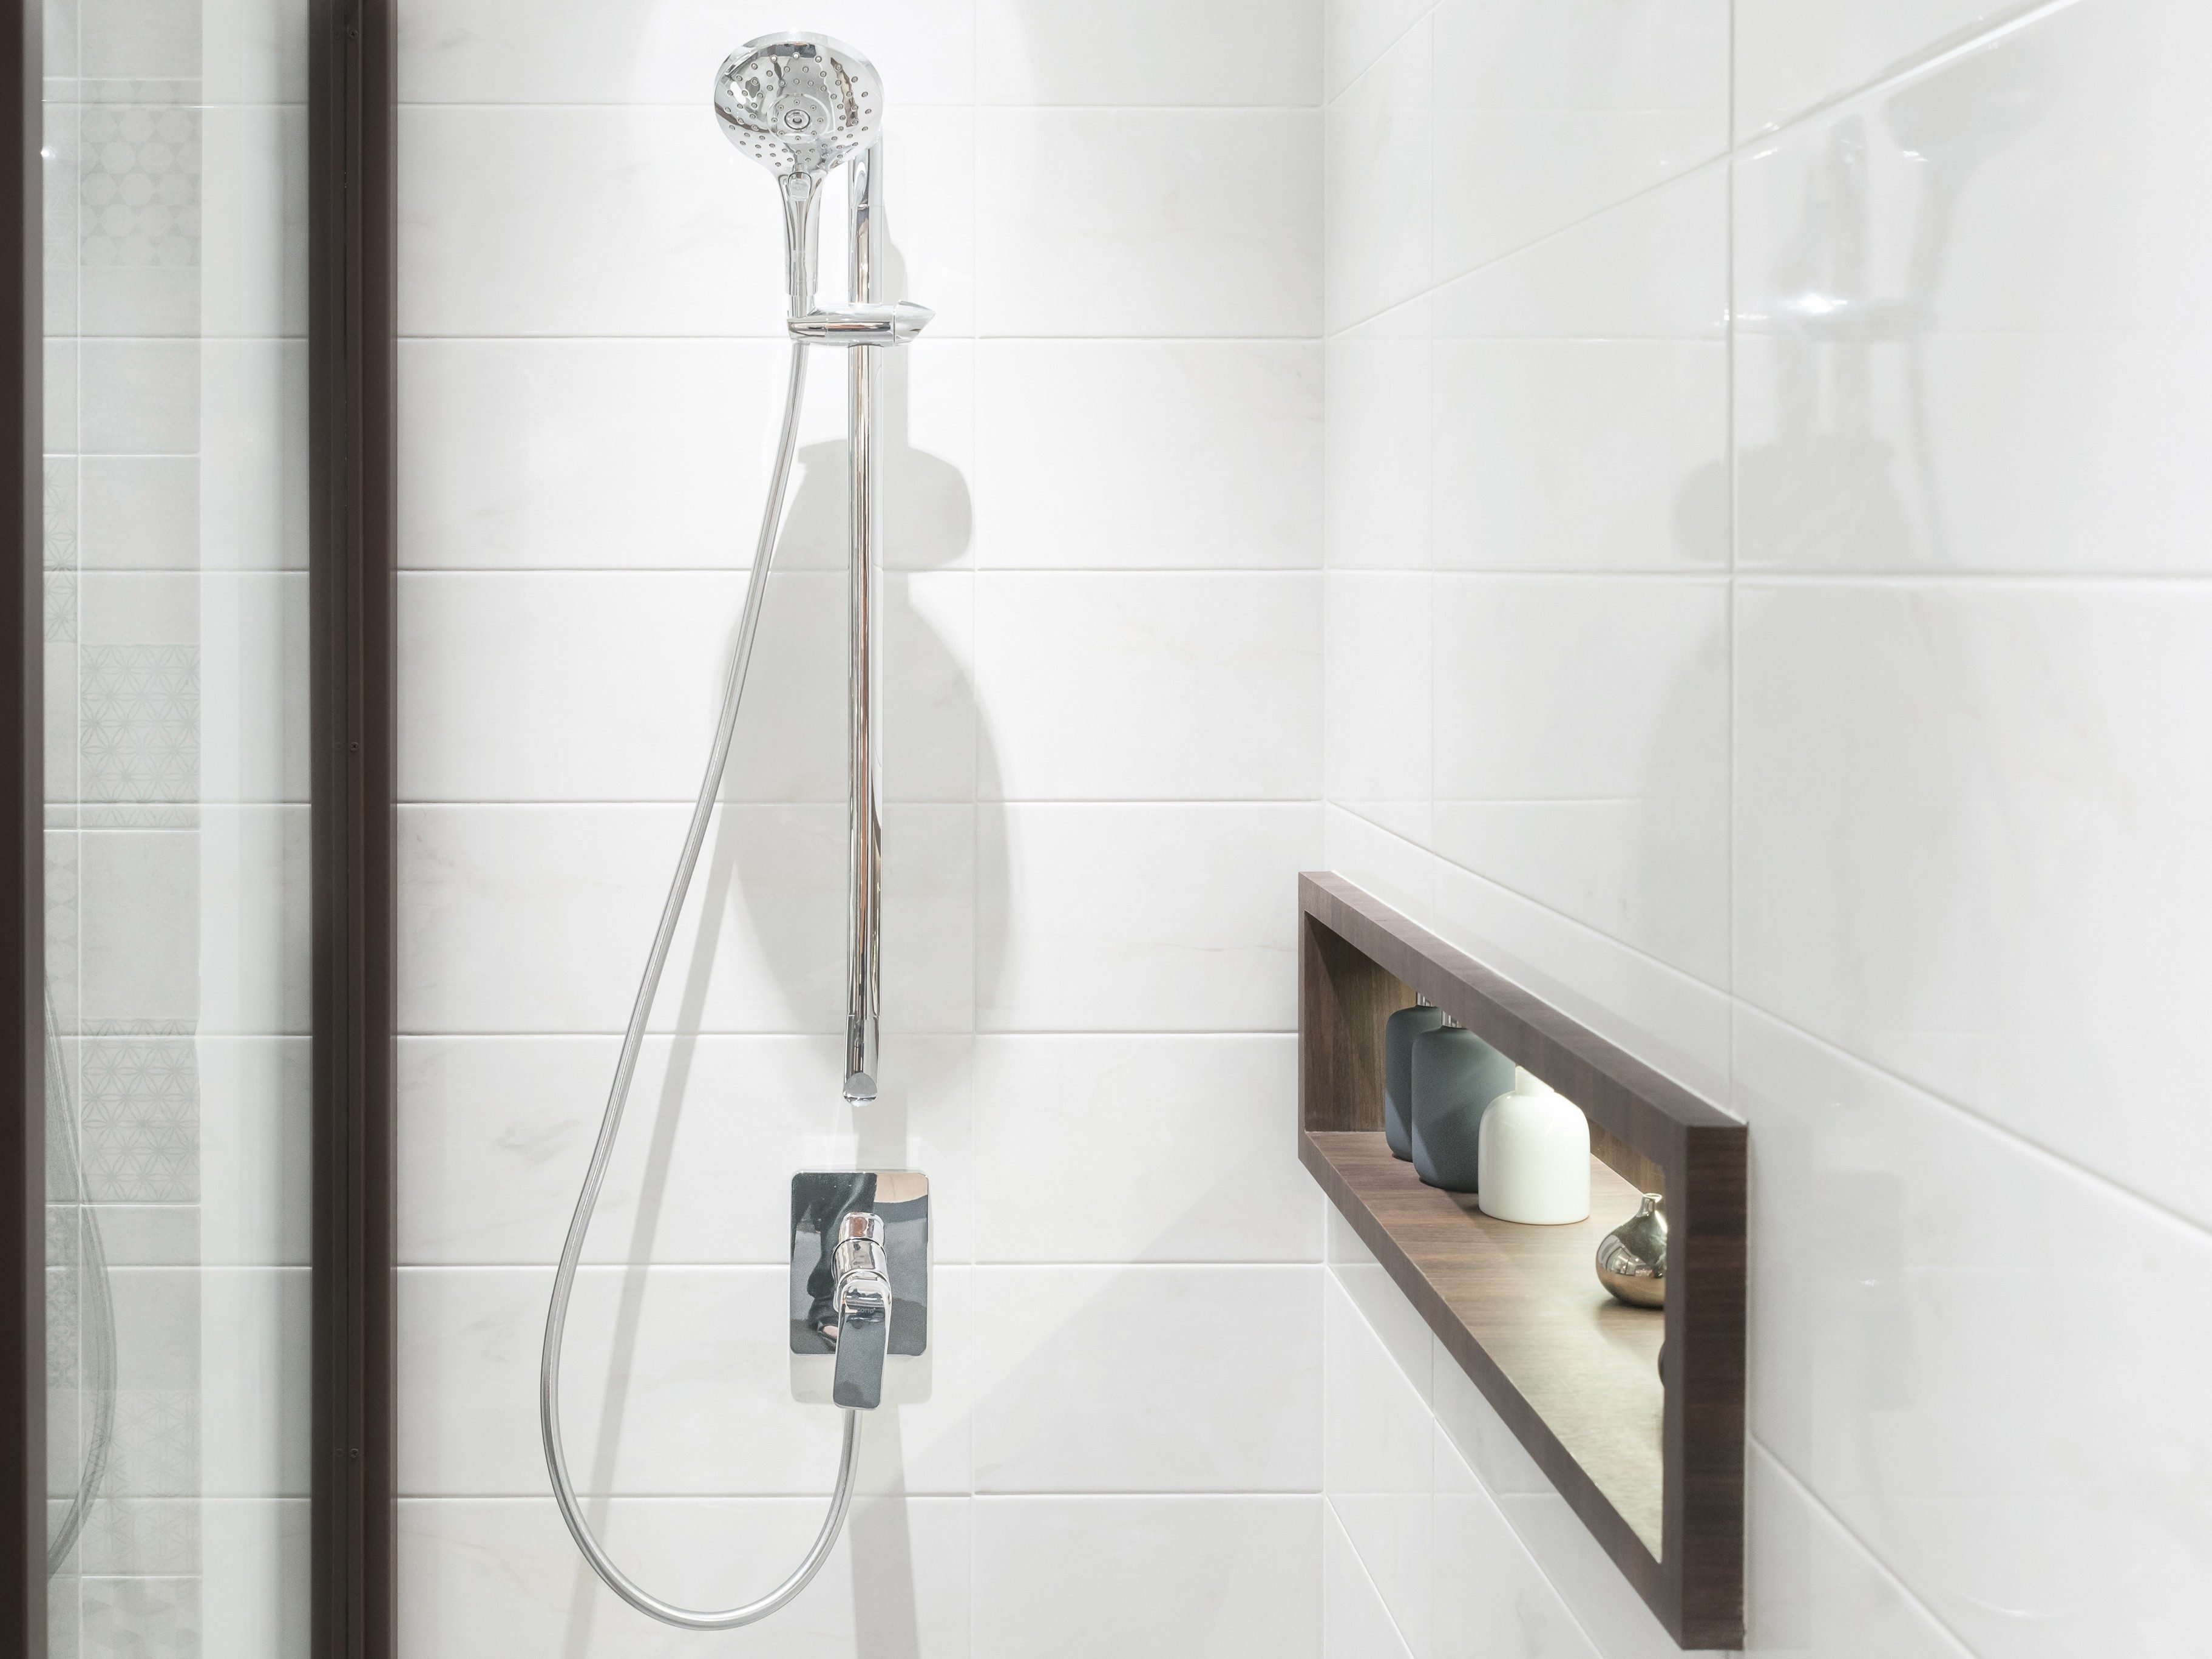 3. Use Ammonia to Clean Bathroom Tiles